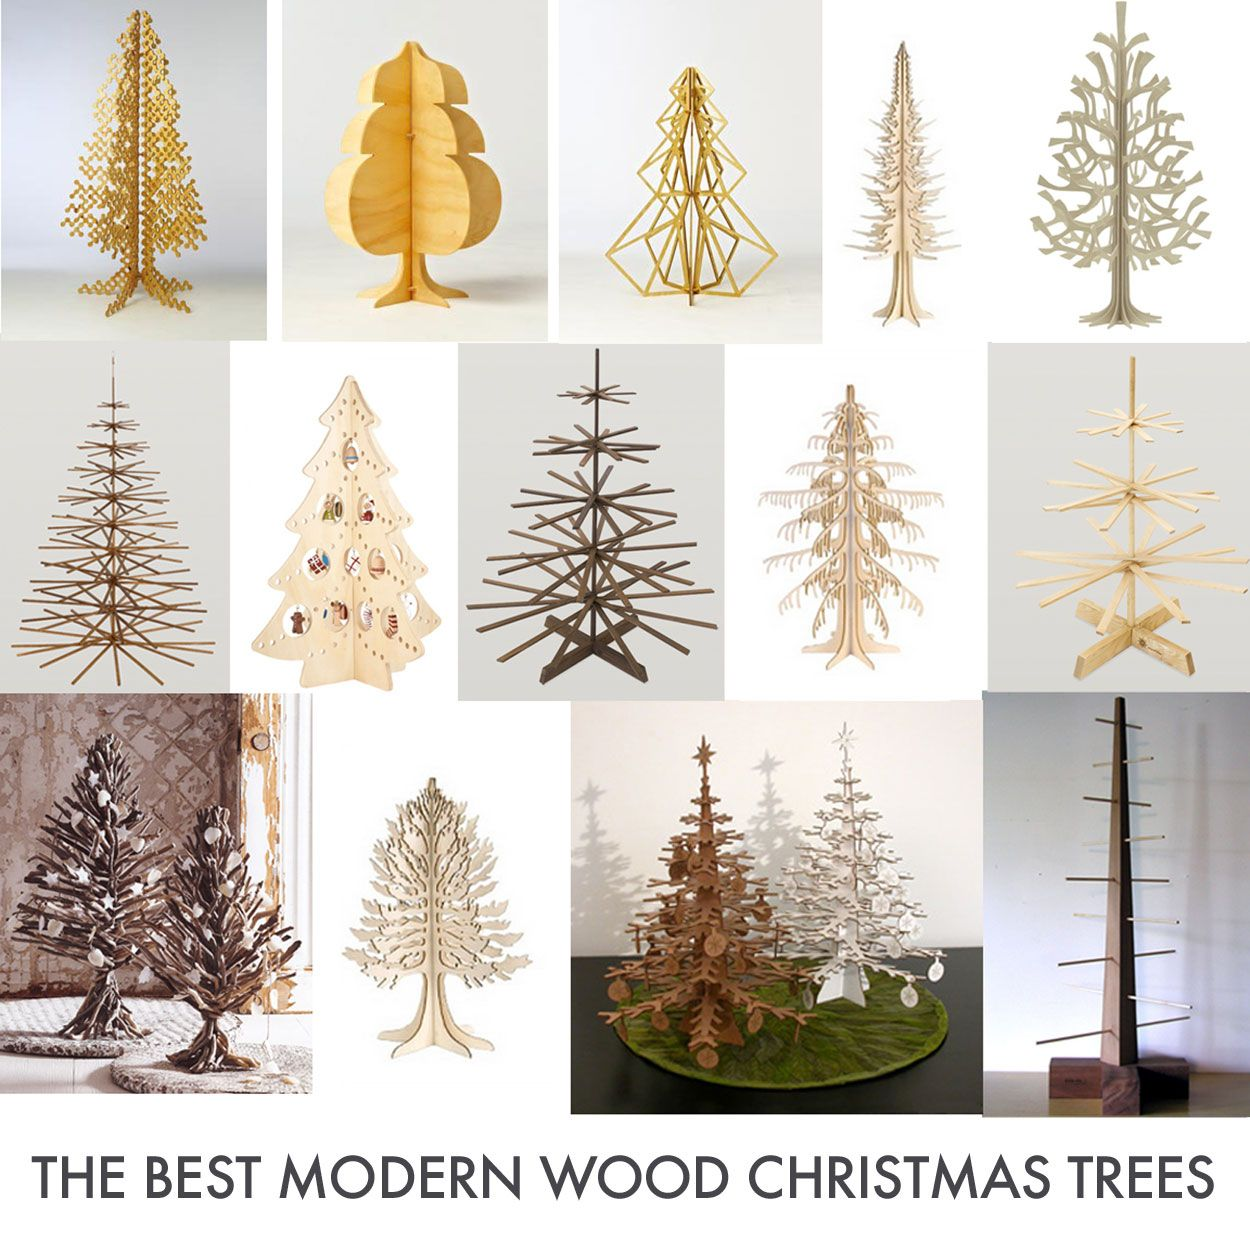 The Top Modern Wood Christmas Trees For 2009 Updated For 2011 Moderne Weihnachtsbaume Weihnachtsbaum Alternative Moderne Weihnachten